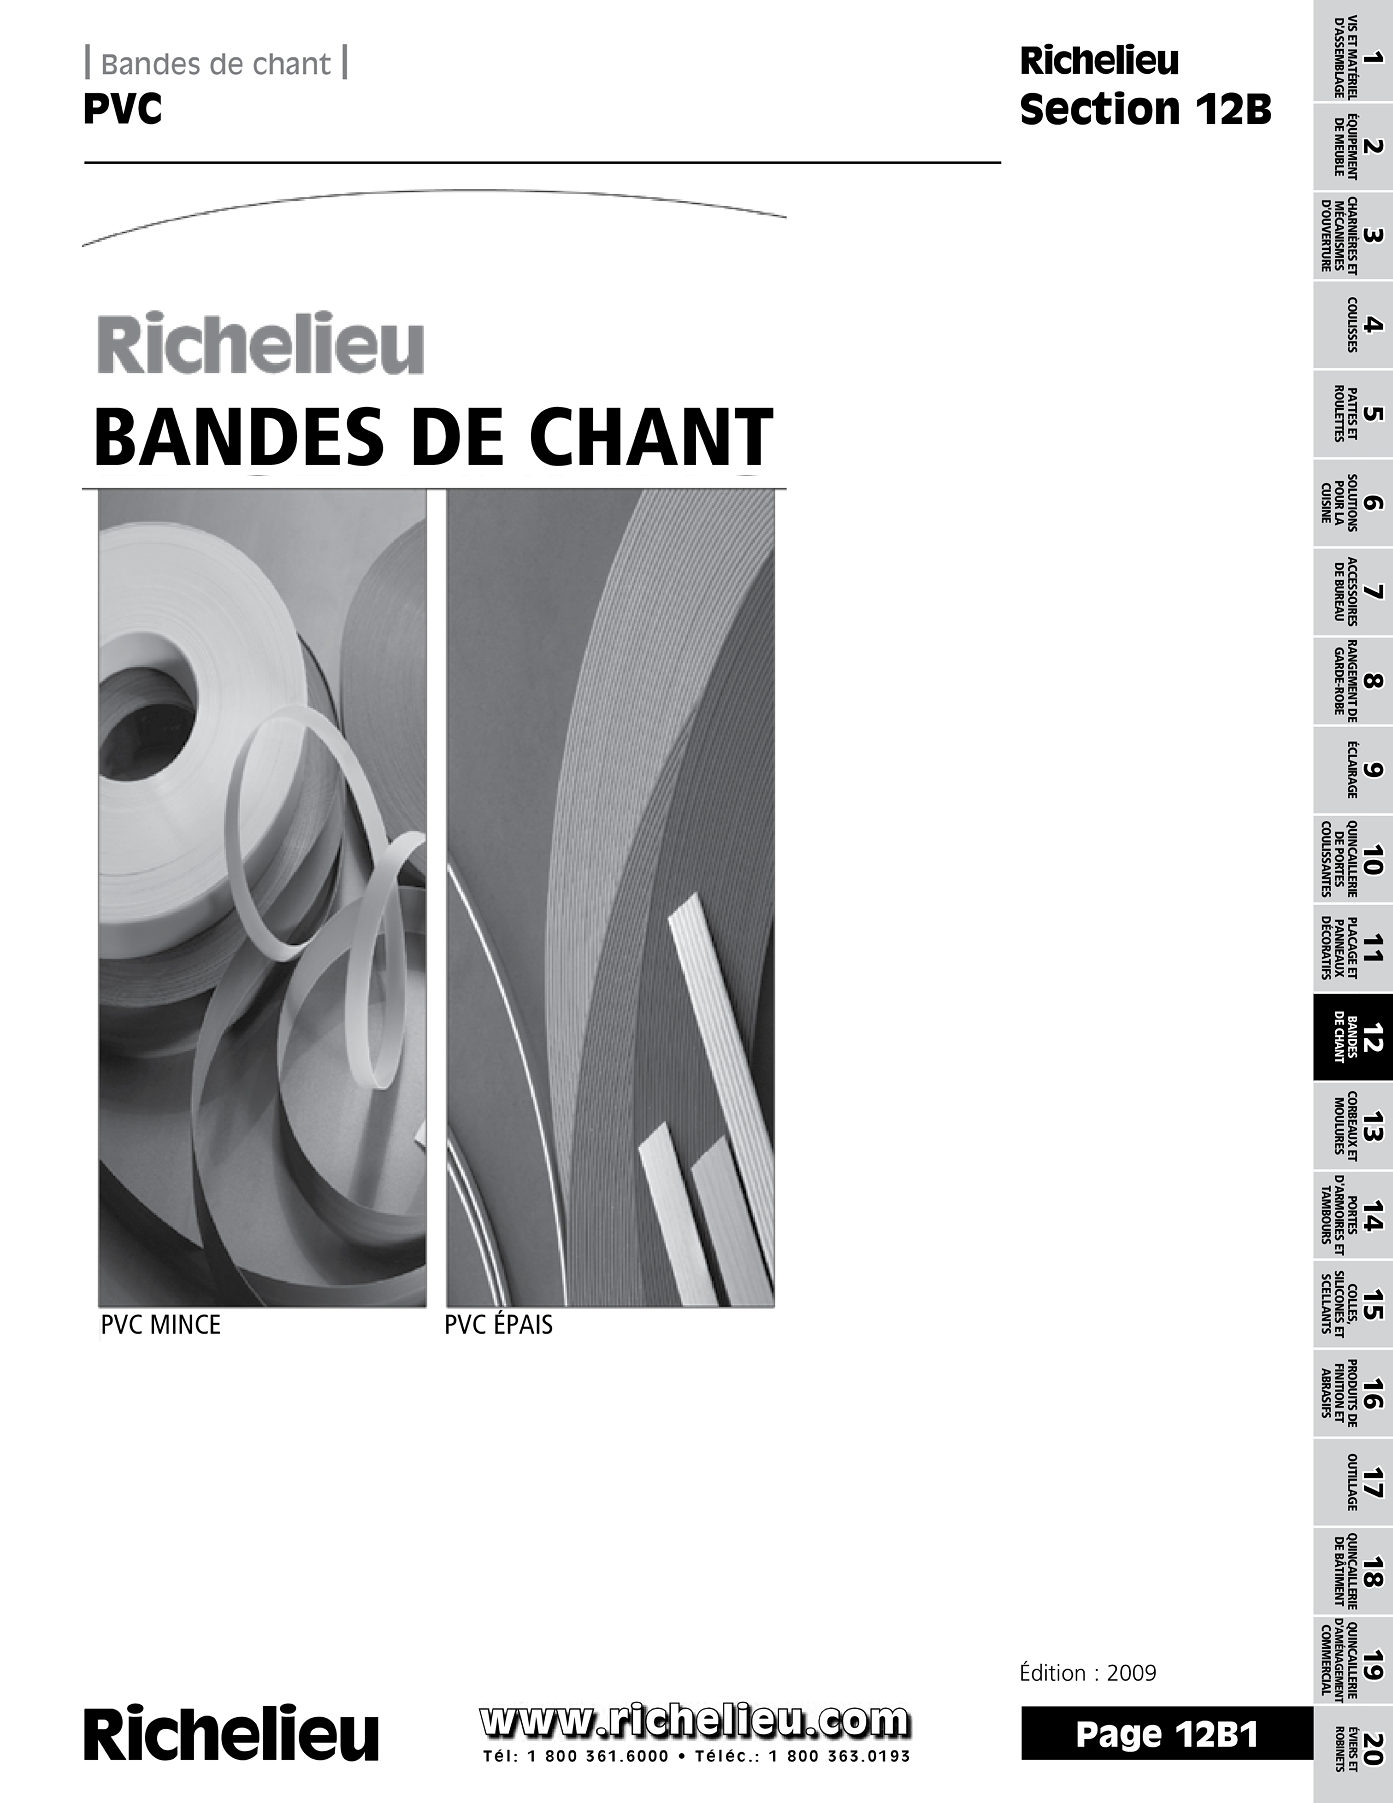 librairie des catalogues richelieu bandes de chant pvc page 1 quincaillerie richelieu. Black Bedroom Furniture Sets. Home Design Ideas